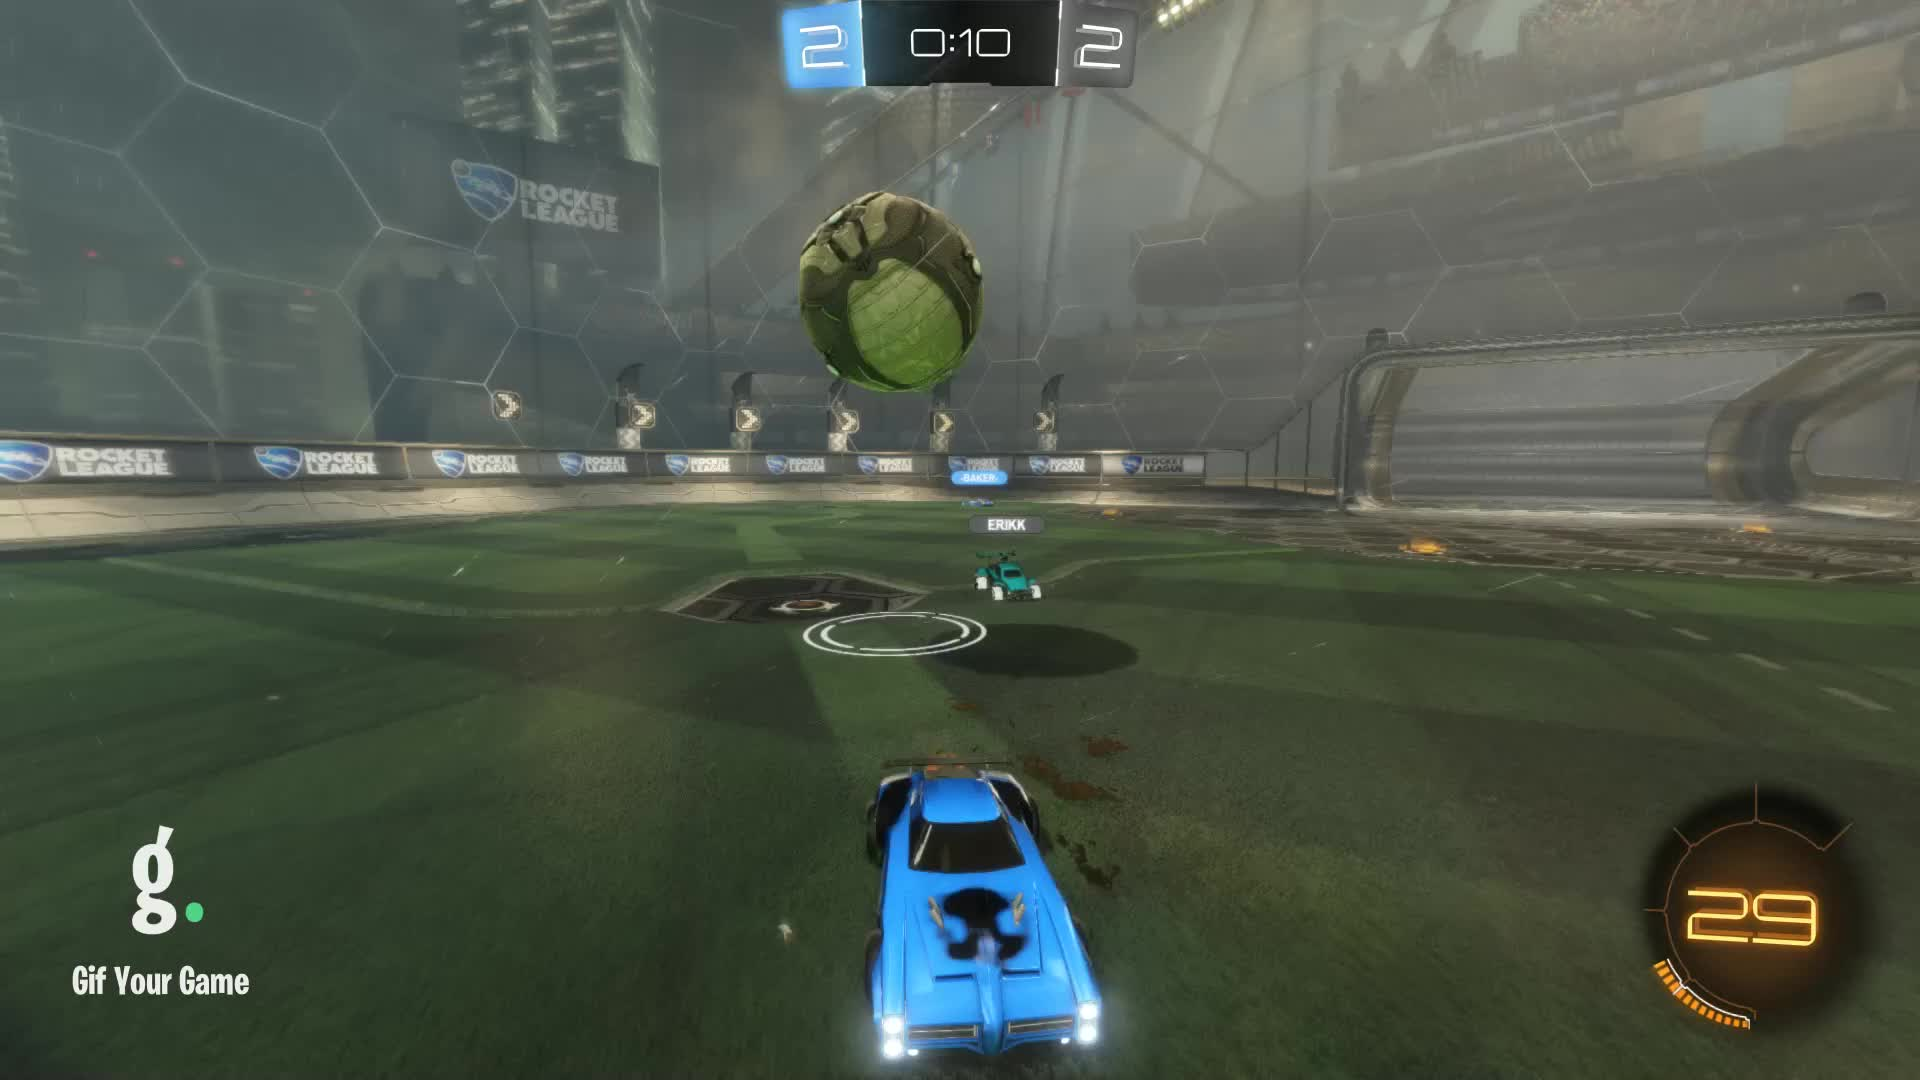 Gif Your Game, GifYourGame, Rocket League, RocketLeague, Save, SwolSquirrel, Save 7: SwolSquirrel GIFs